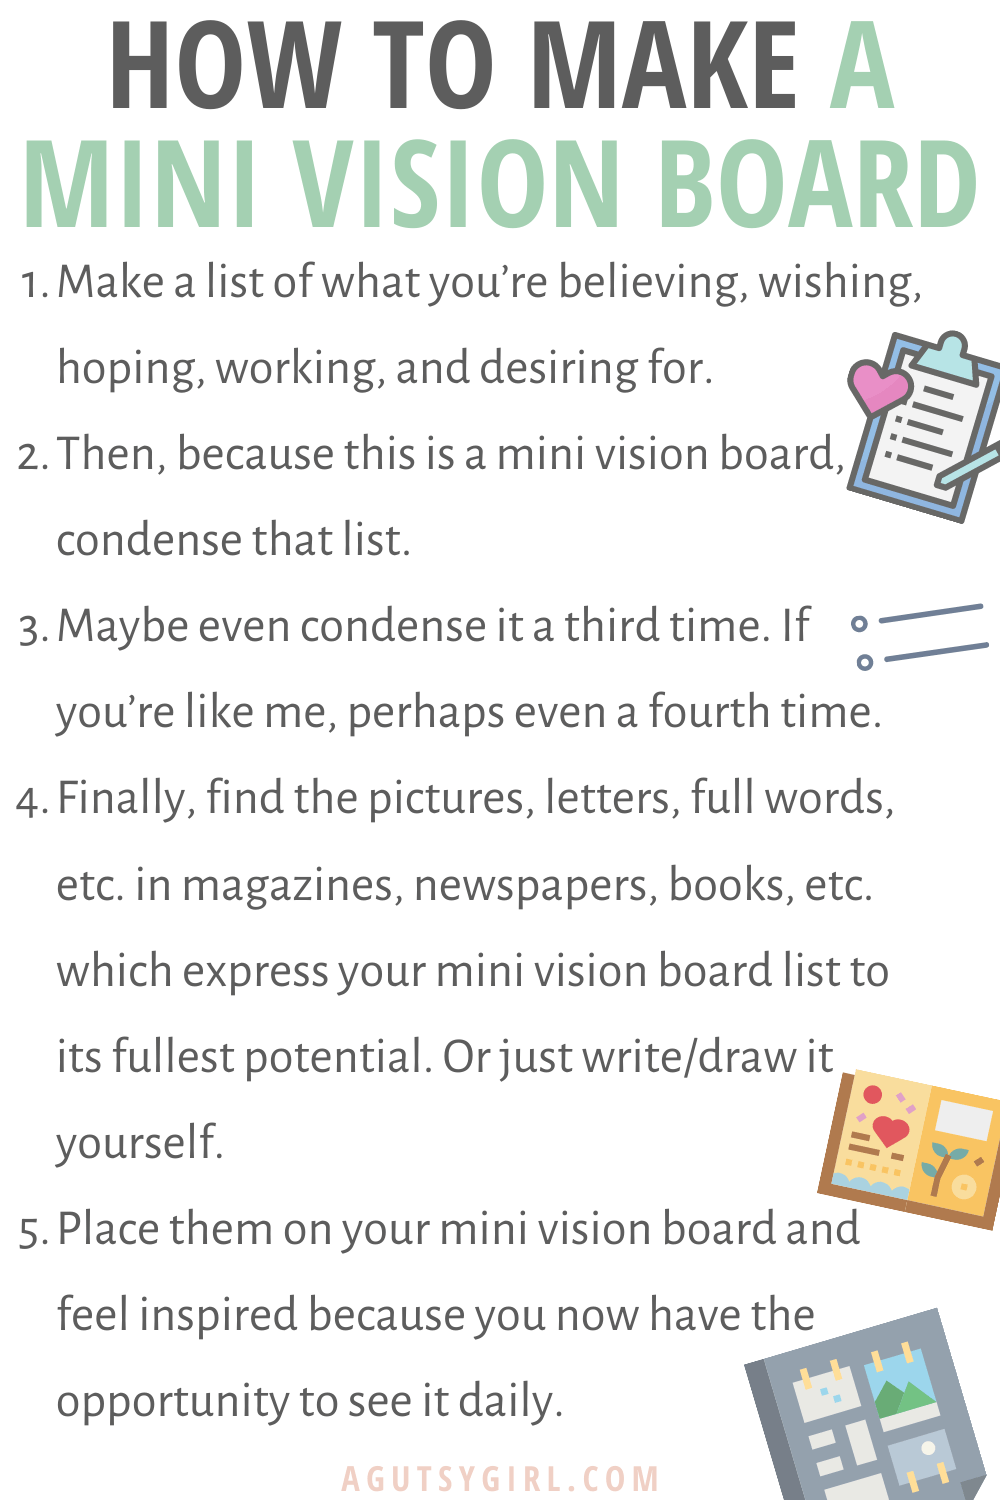 How to Make a Mini Vision Board agutsygirl.com #visionboard #newyearsgoals #newyearsresolutions #healingjourney